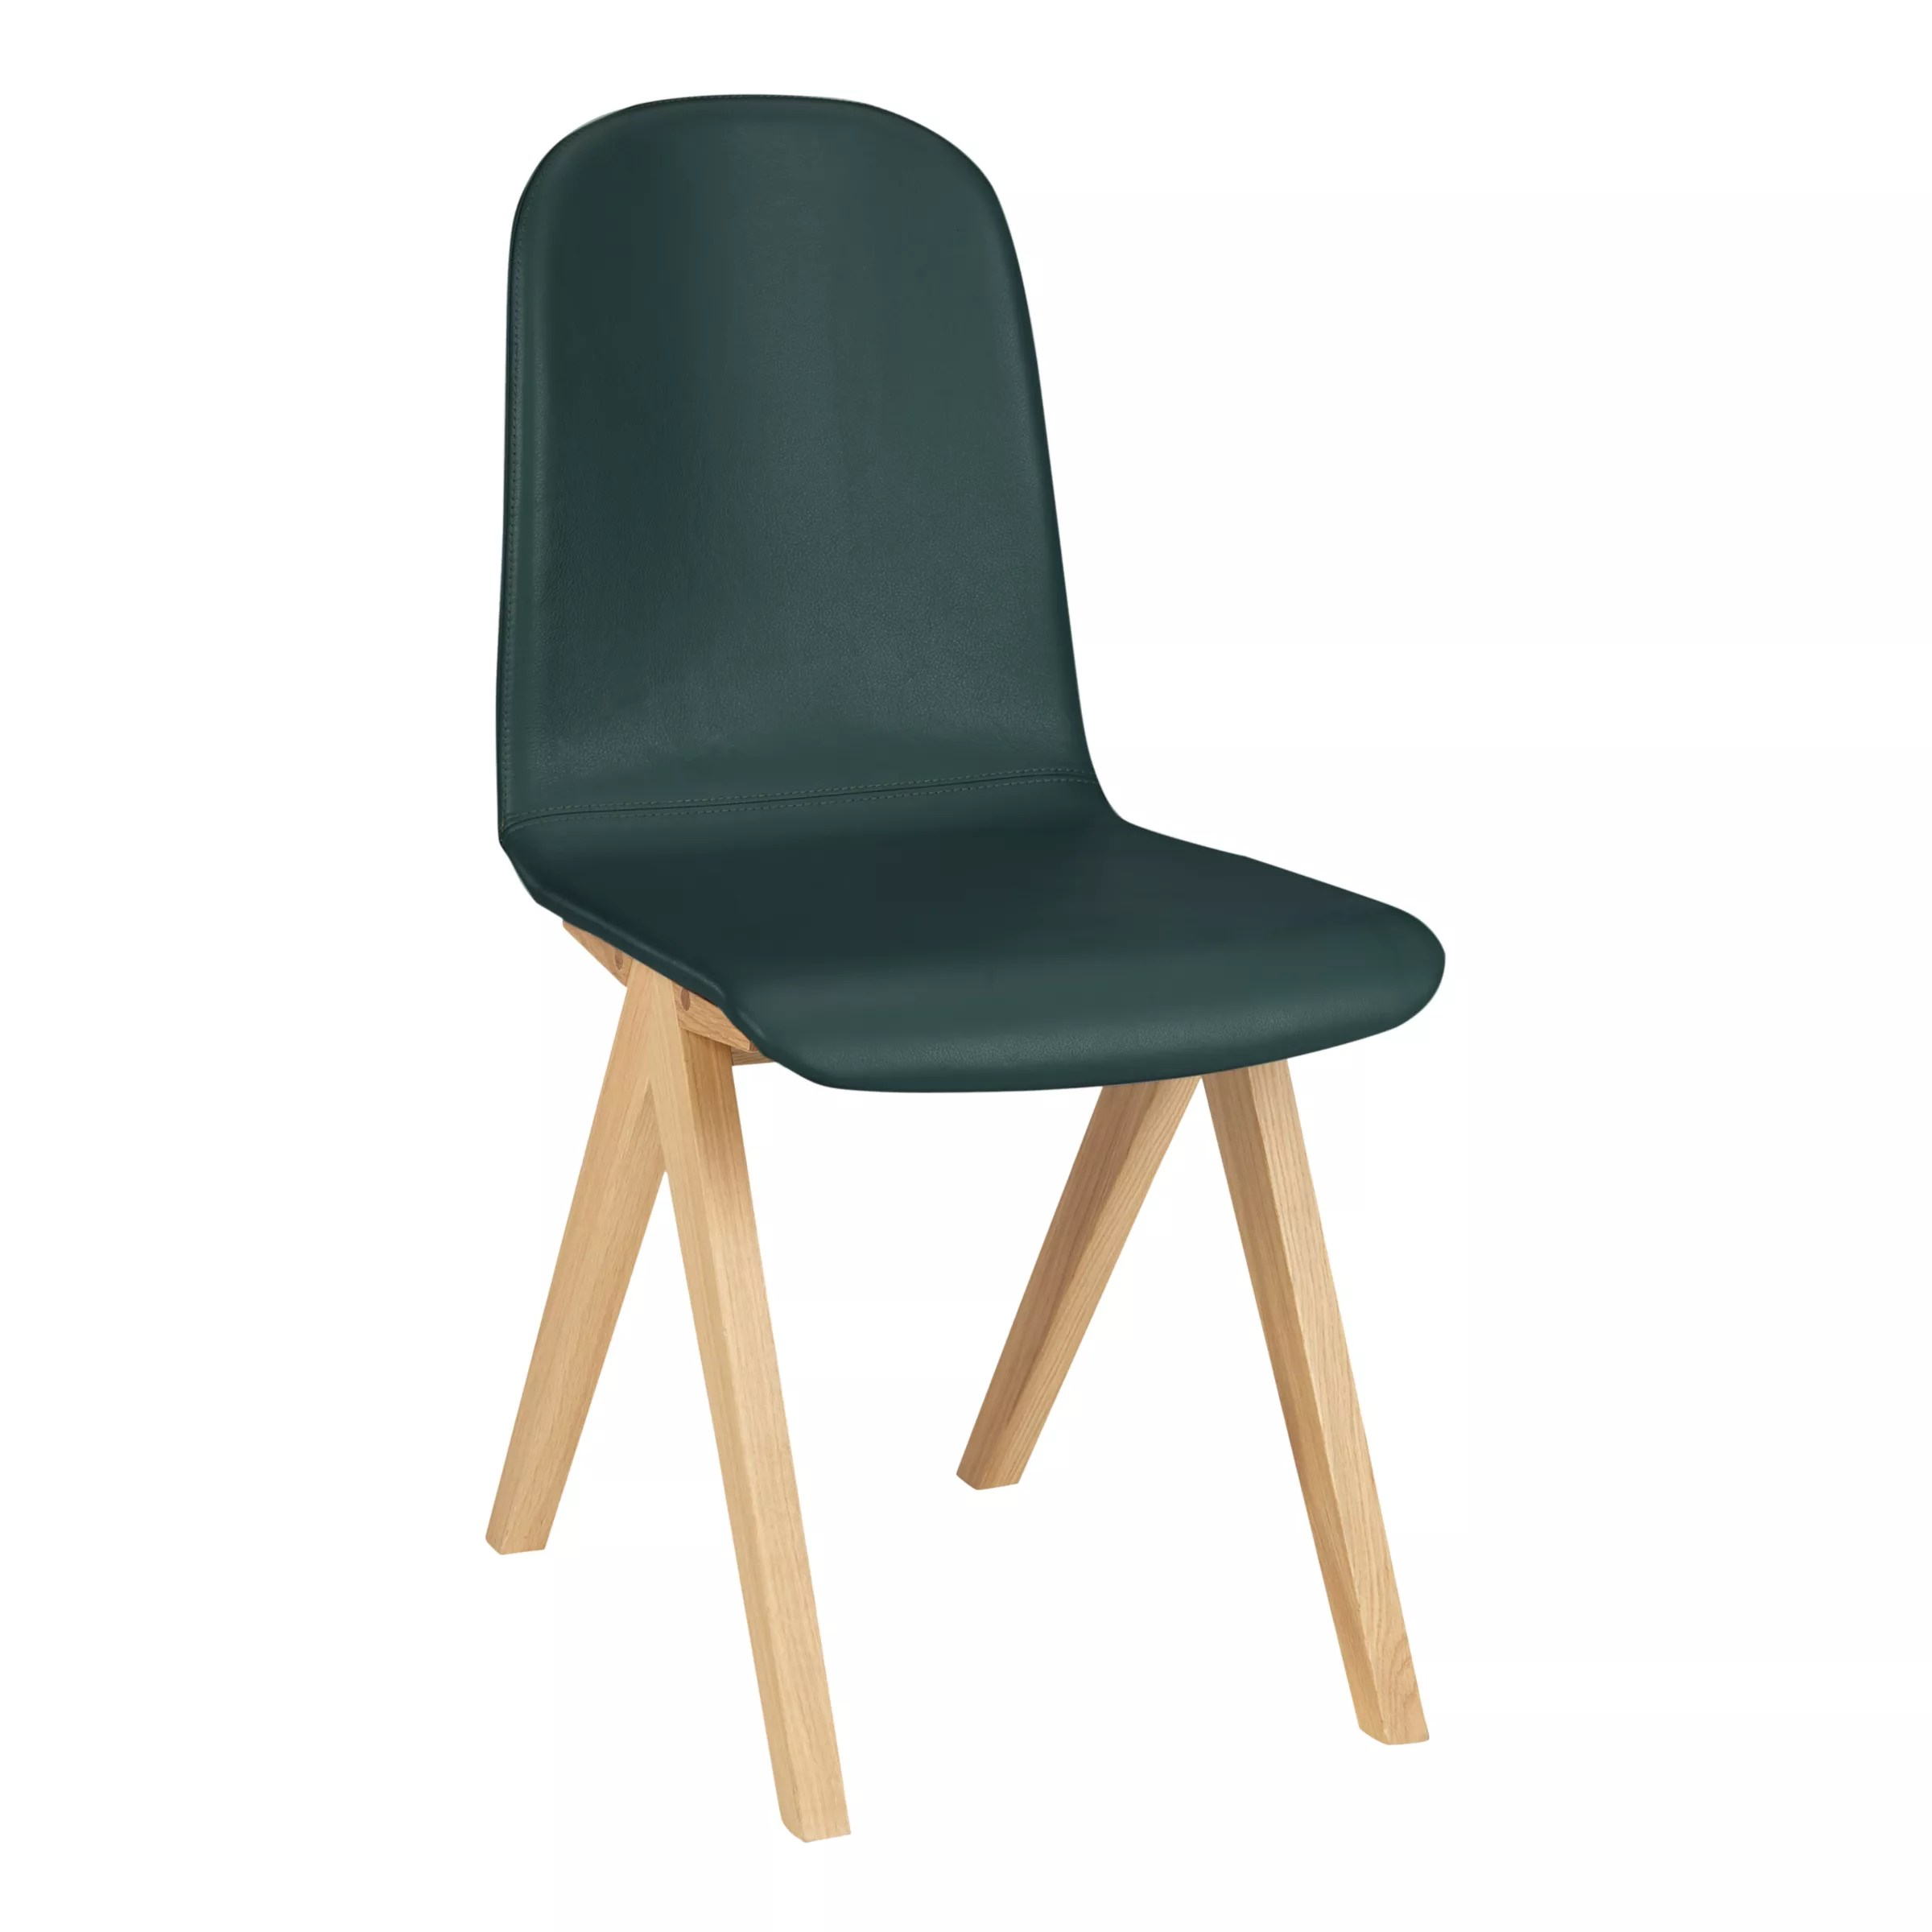 Green Upholstered Chair Bethan Gray For John Lewis Newman Leather Upholstered Dining Chair